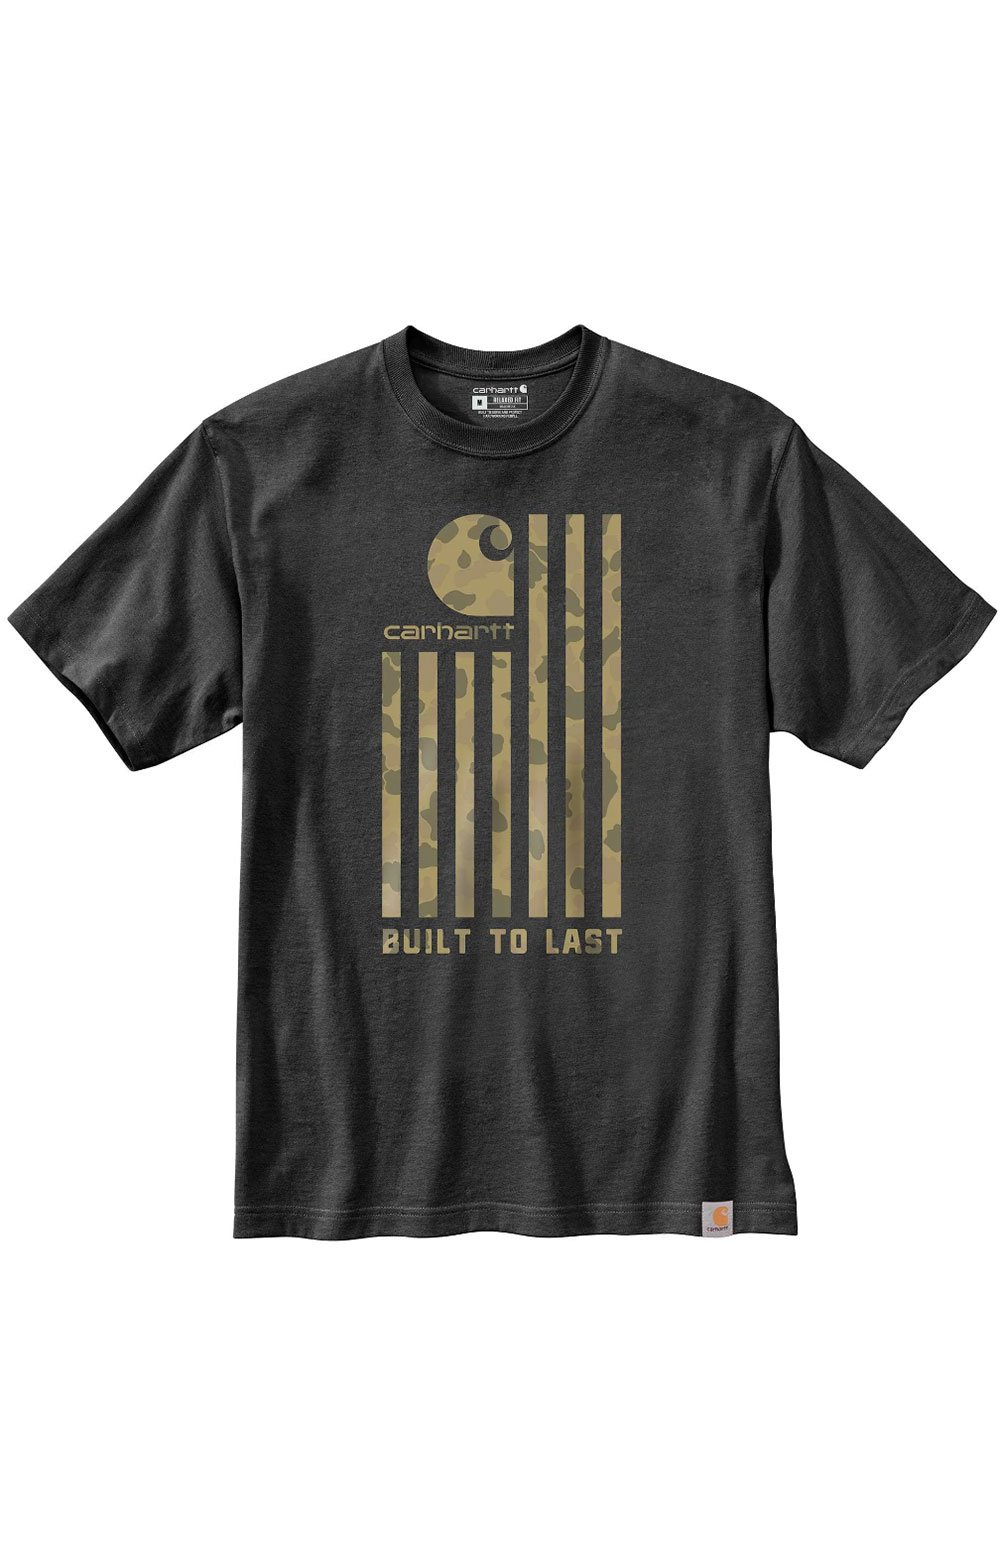 (104619) Relaxed Fit Midweight S/S Flag Graphic T-Shirt - Carbon Heather